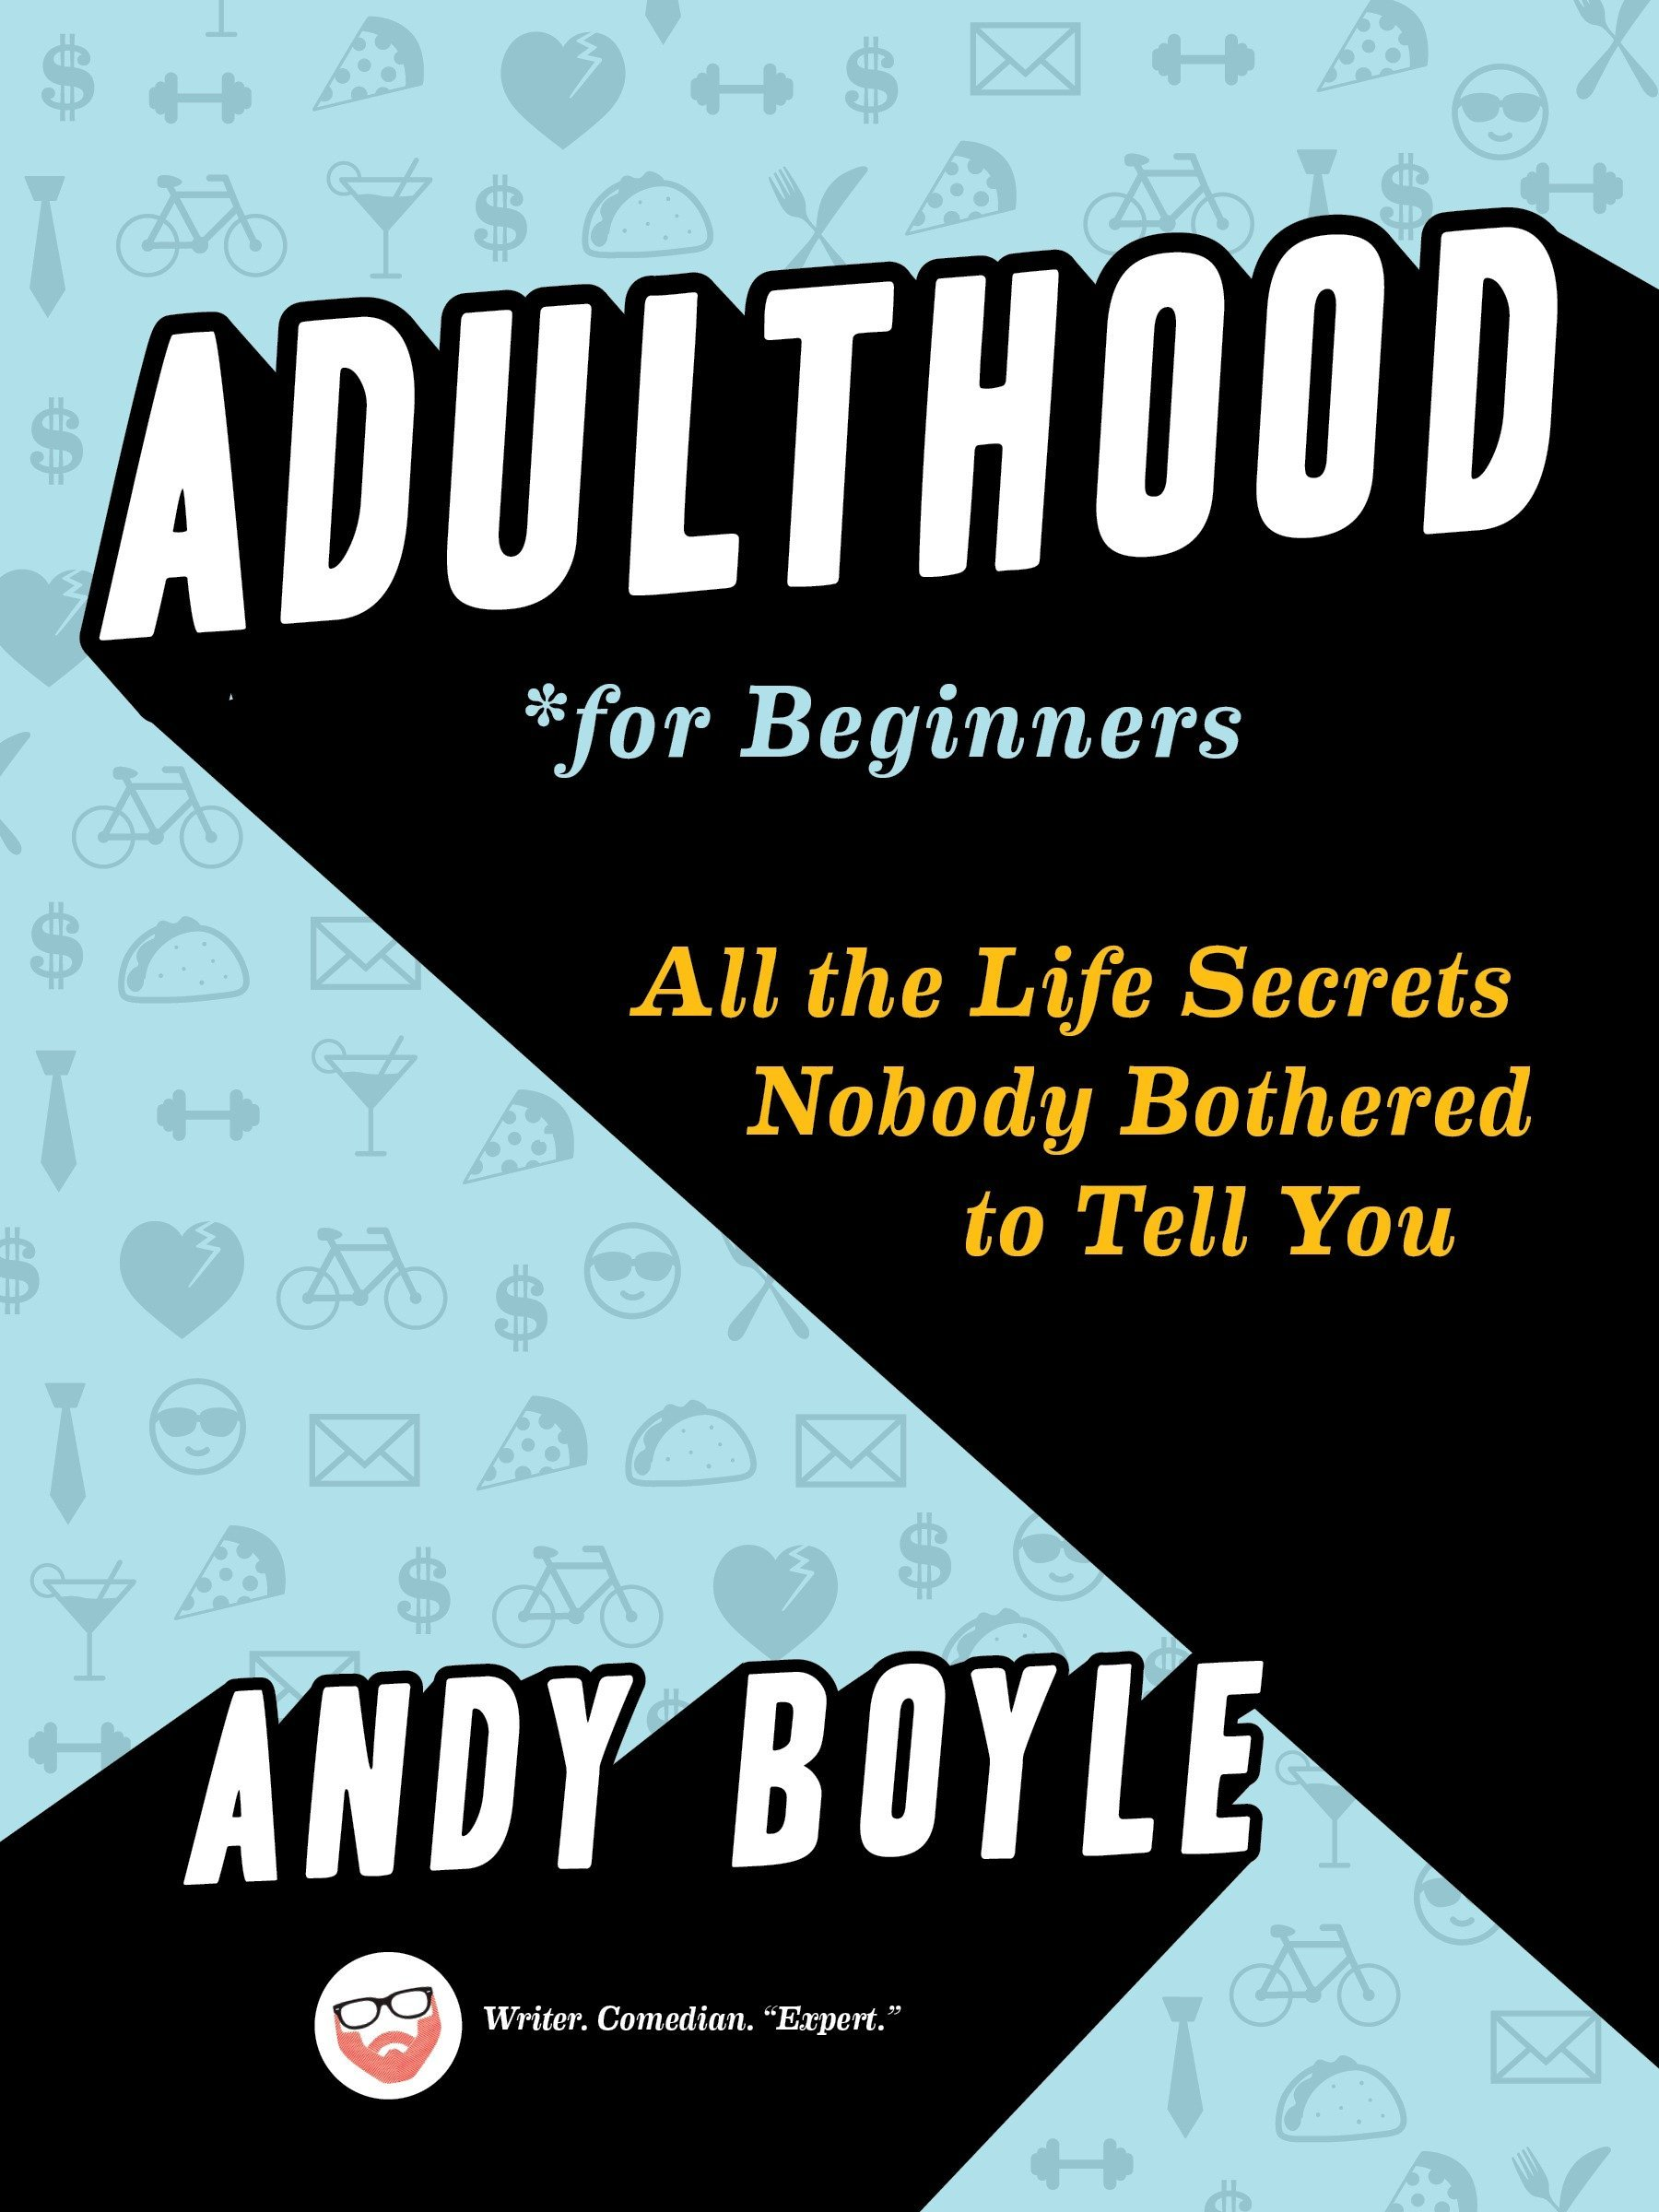 Amazon.com: Adulthood for Beginners: All the Life Secrets Nobody Bothered  to Tell You (9780143130512): Andy Boyle: Books